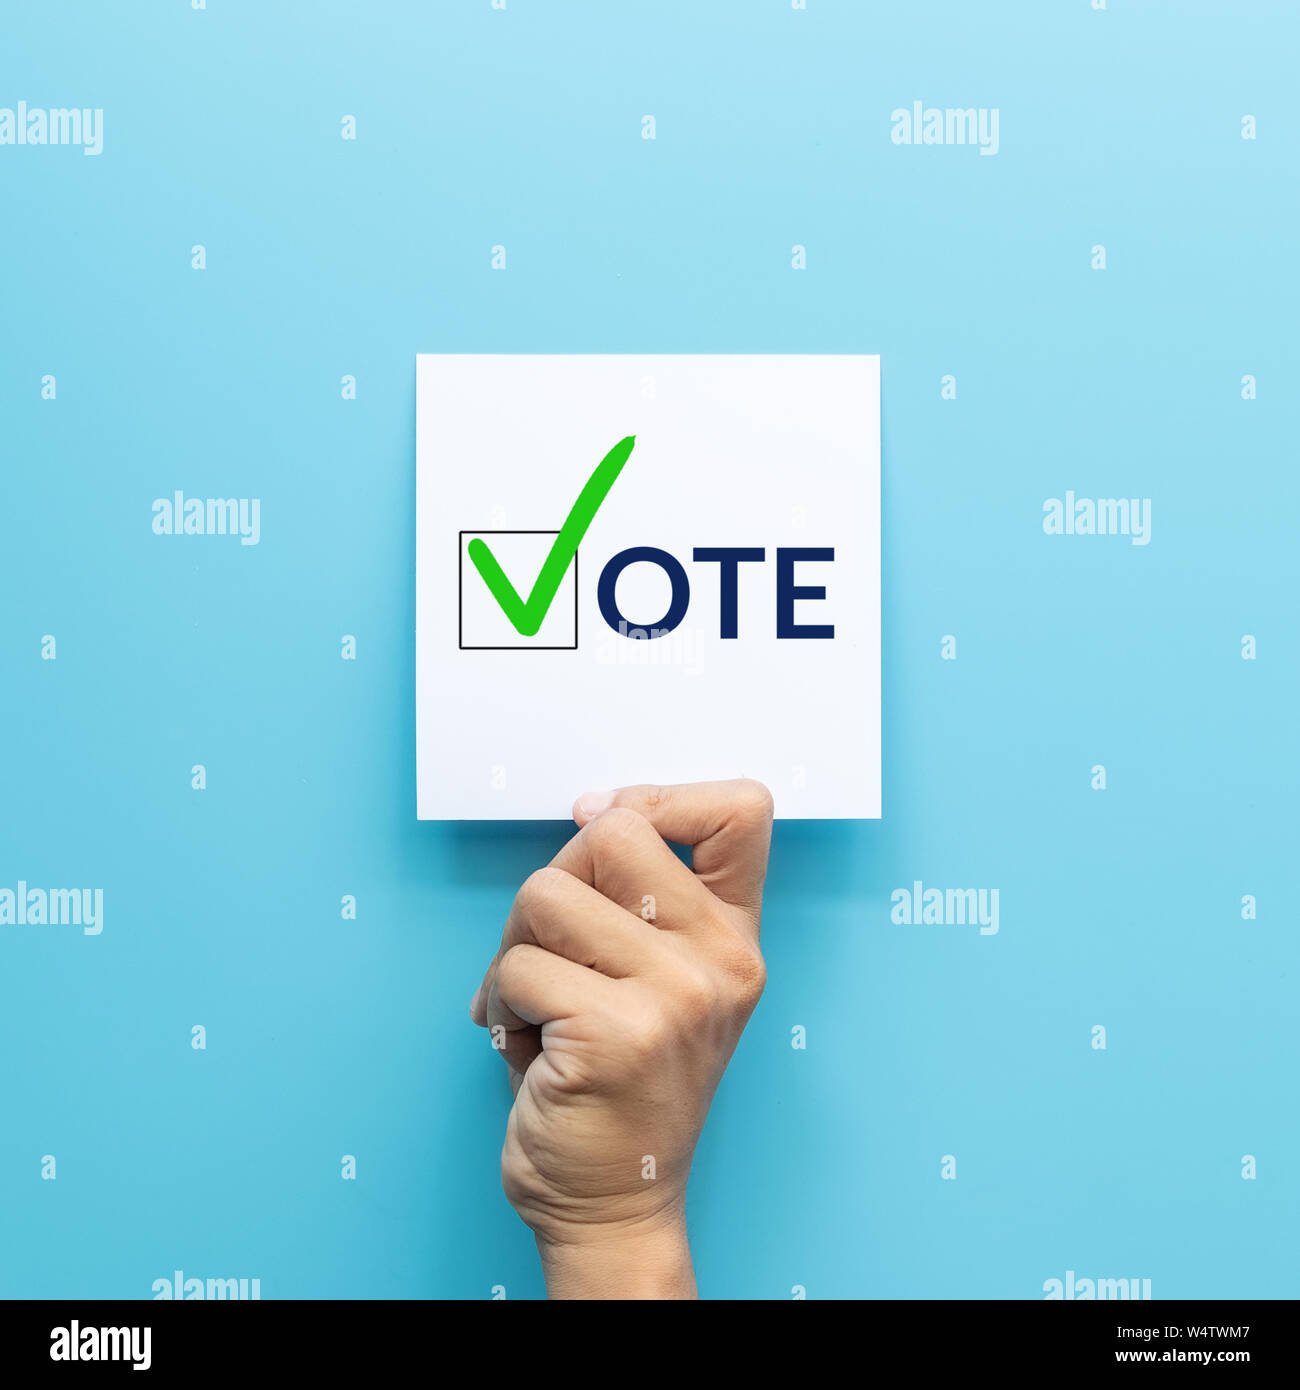 """hand holding white paper with the """"vote"""" and green check mark voting symbols in checkbox of the inscription isolated on blue background Stock Photo"""